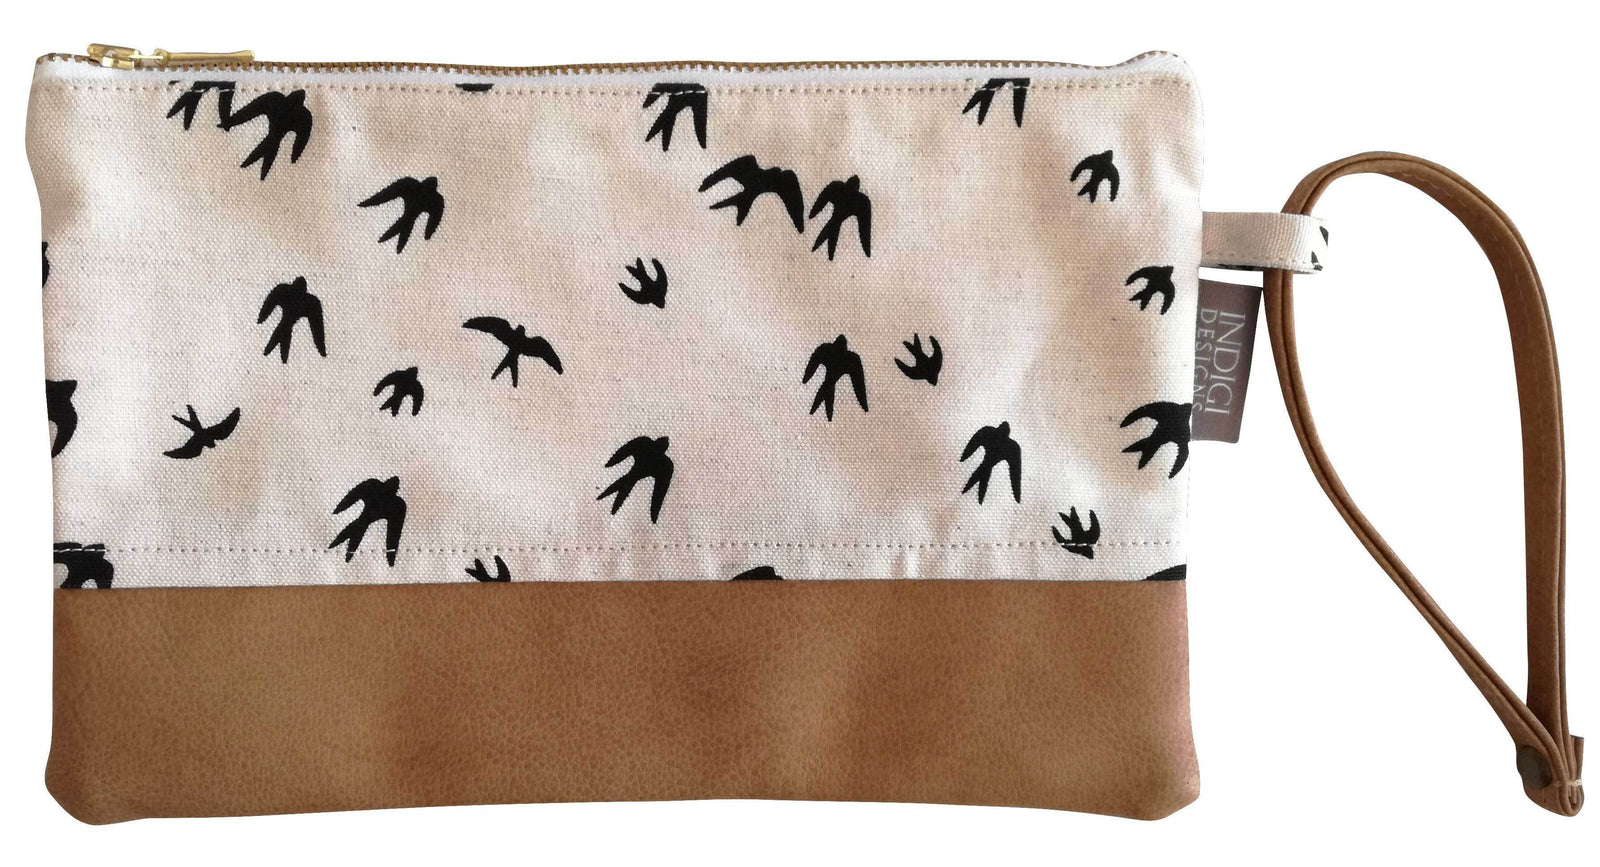 Birds Black with Faux Leather Clutch Bag